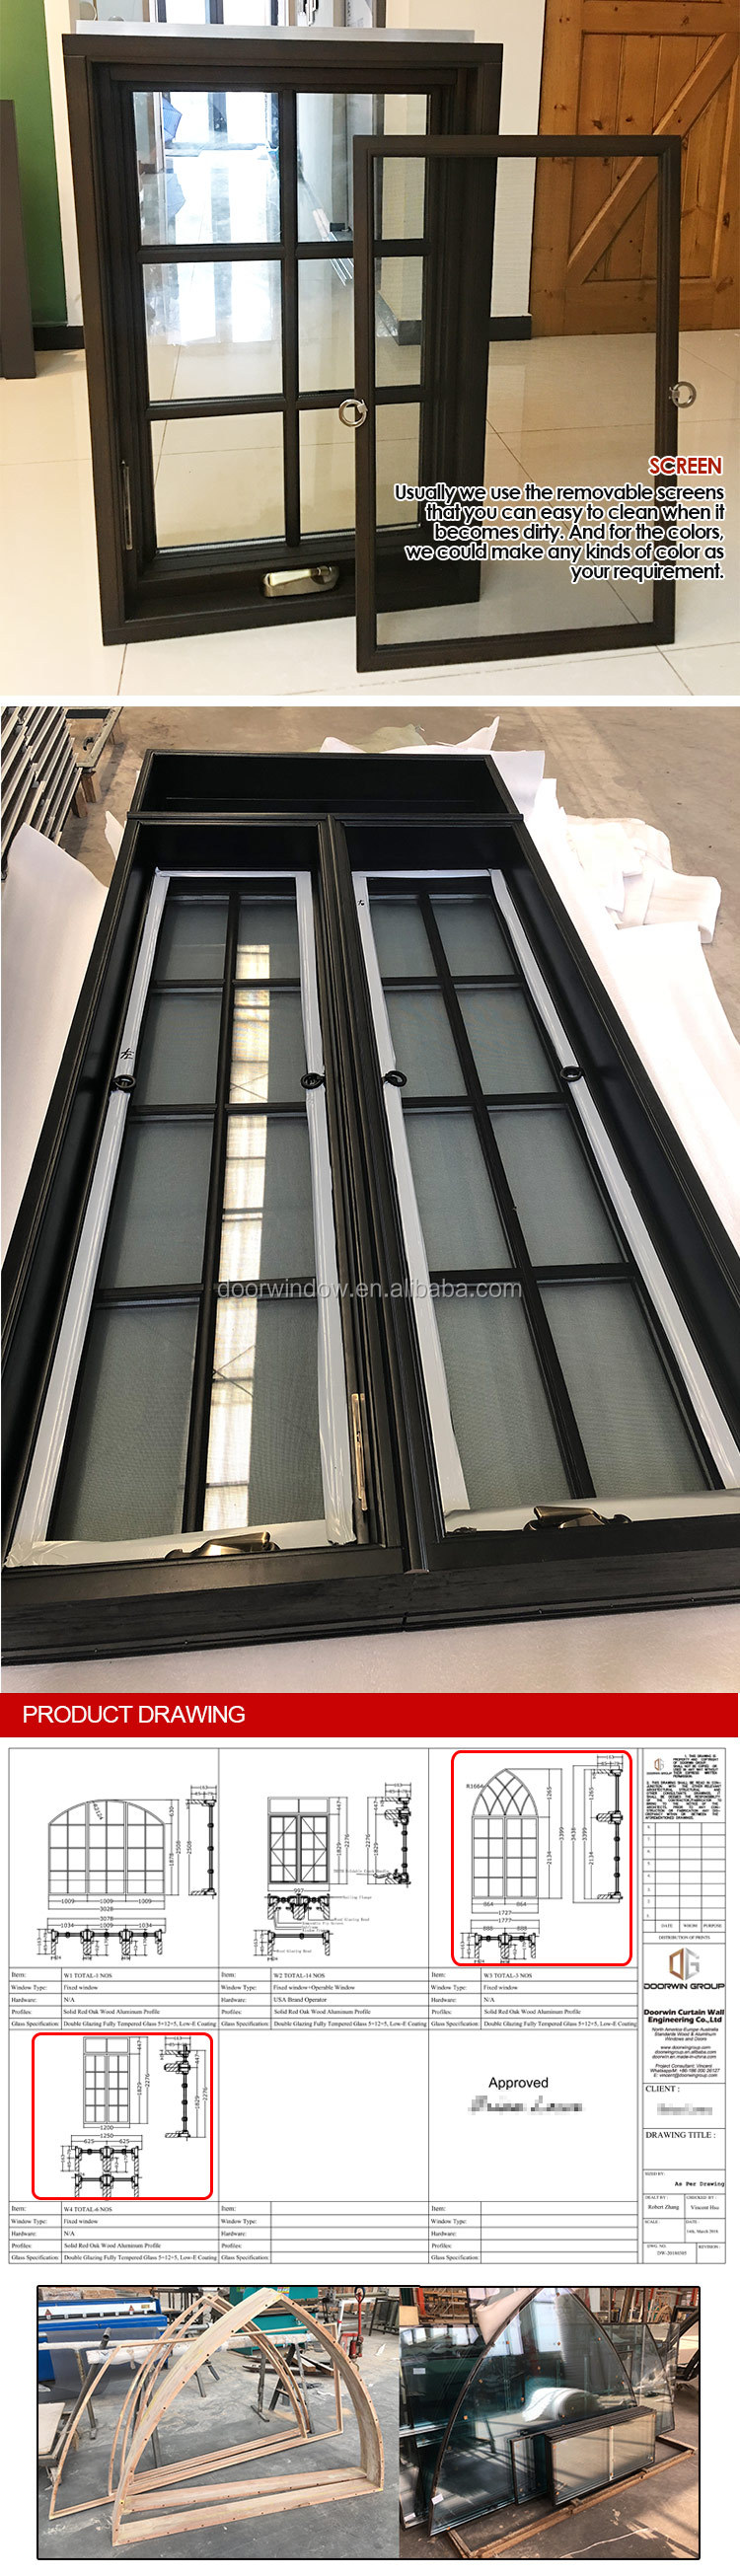 New York American NAMI Certified Aluminum transom awning window sash profile crank open window